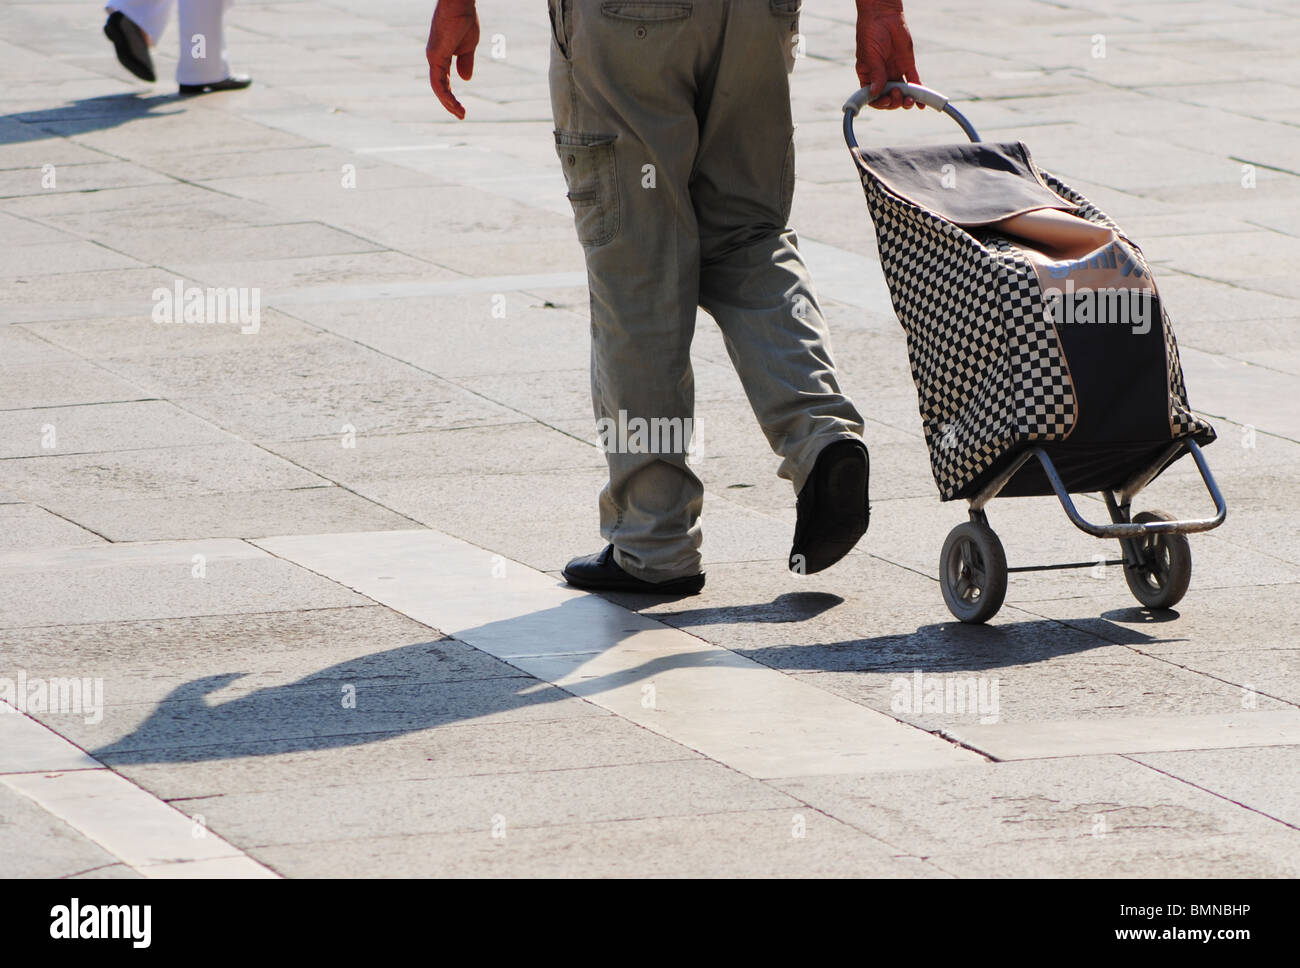 Man pulling a shopping bag on wheels, Venice, Italy - Stock Image